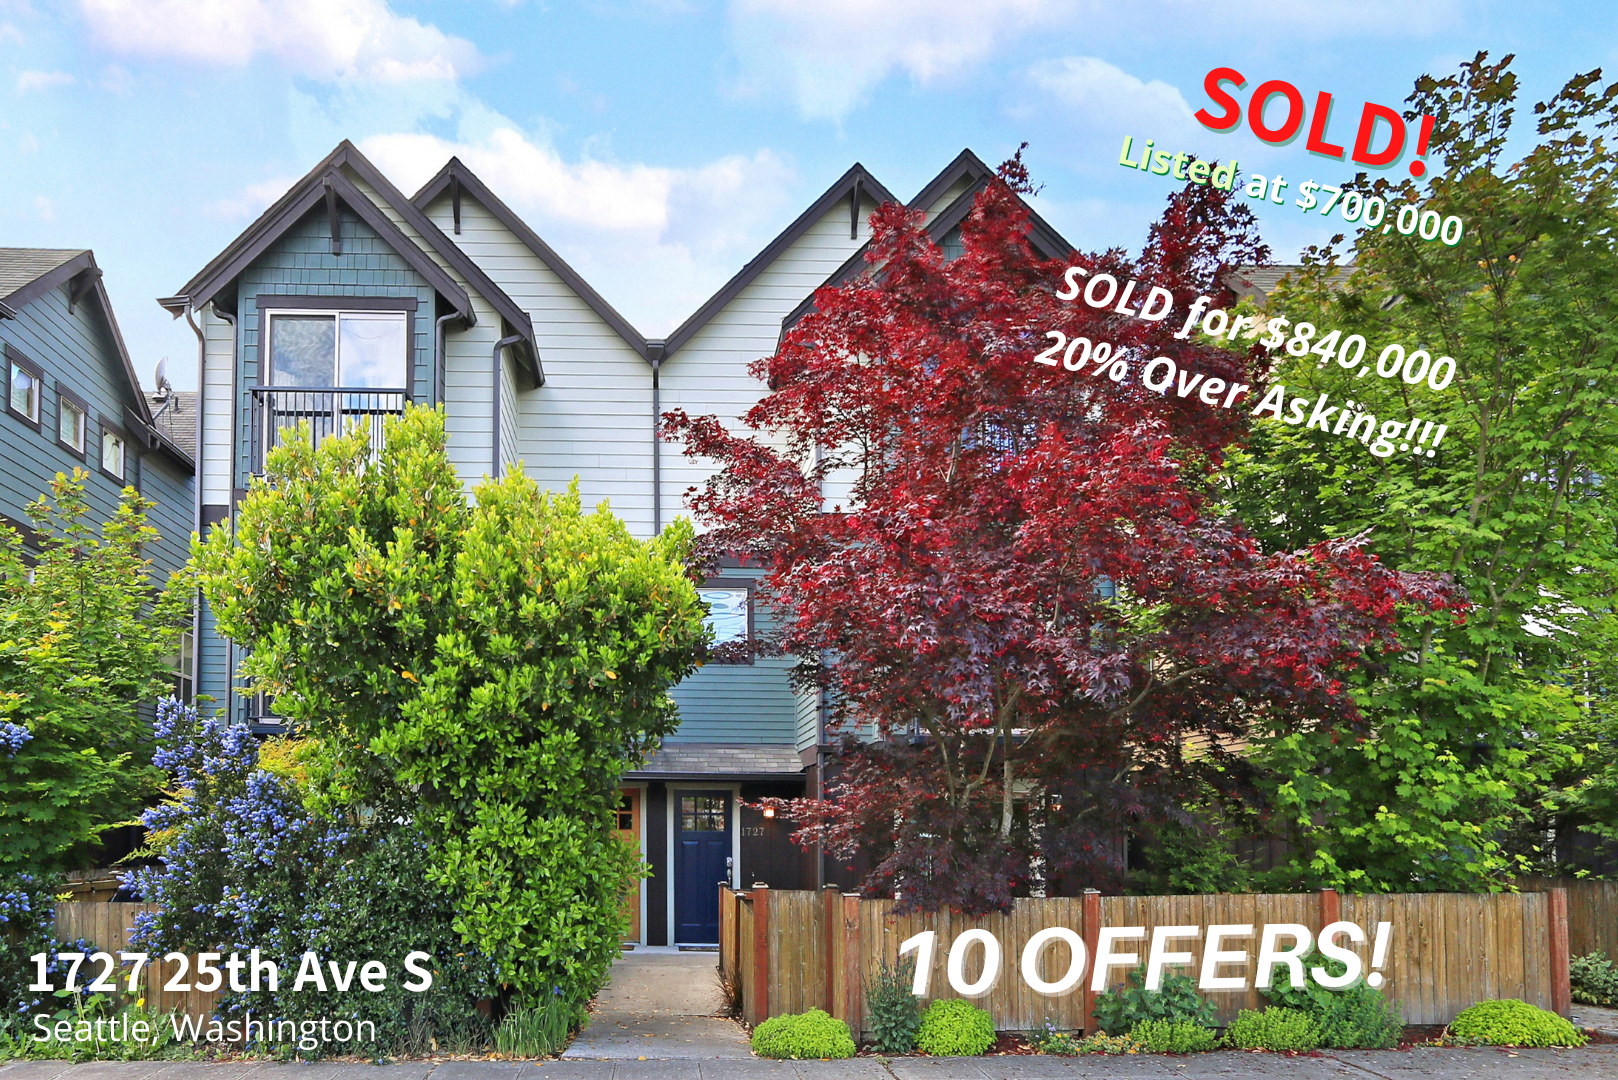 SOLD - 1727 25th Ave S